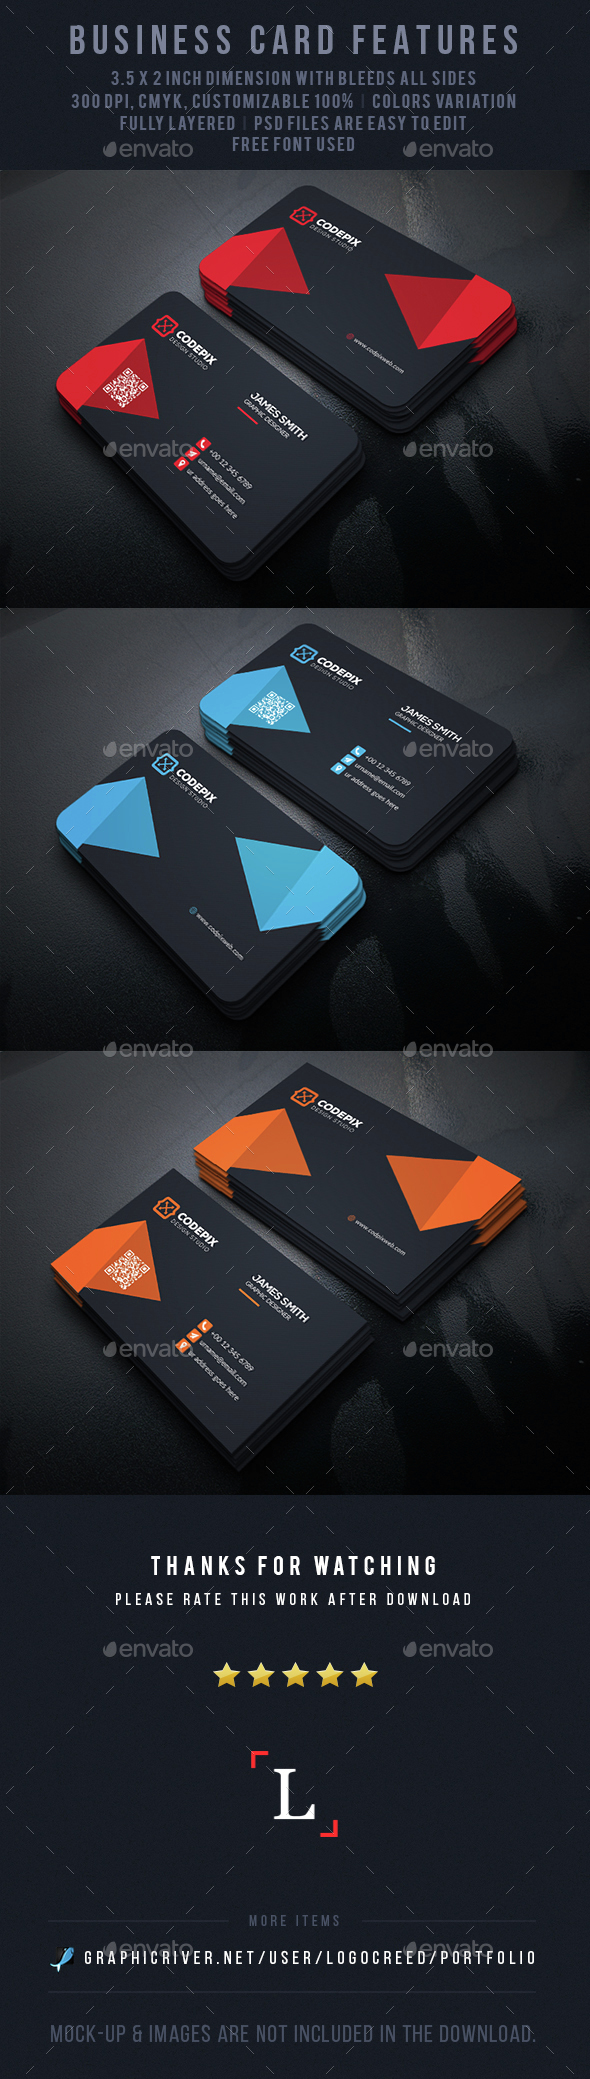 Shape Business Card - Business Cards Print Templates